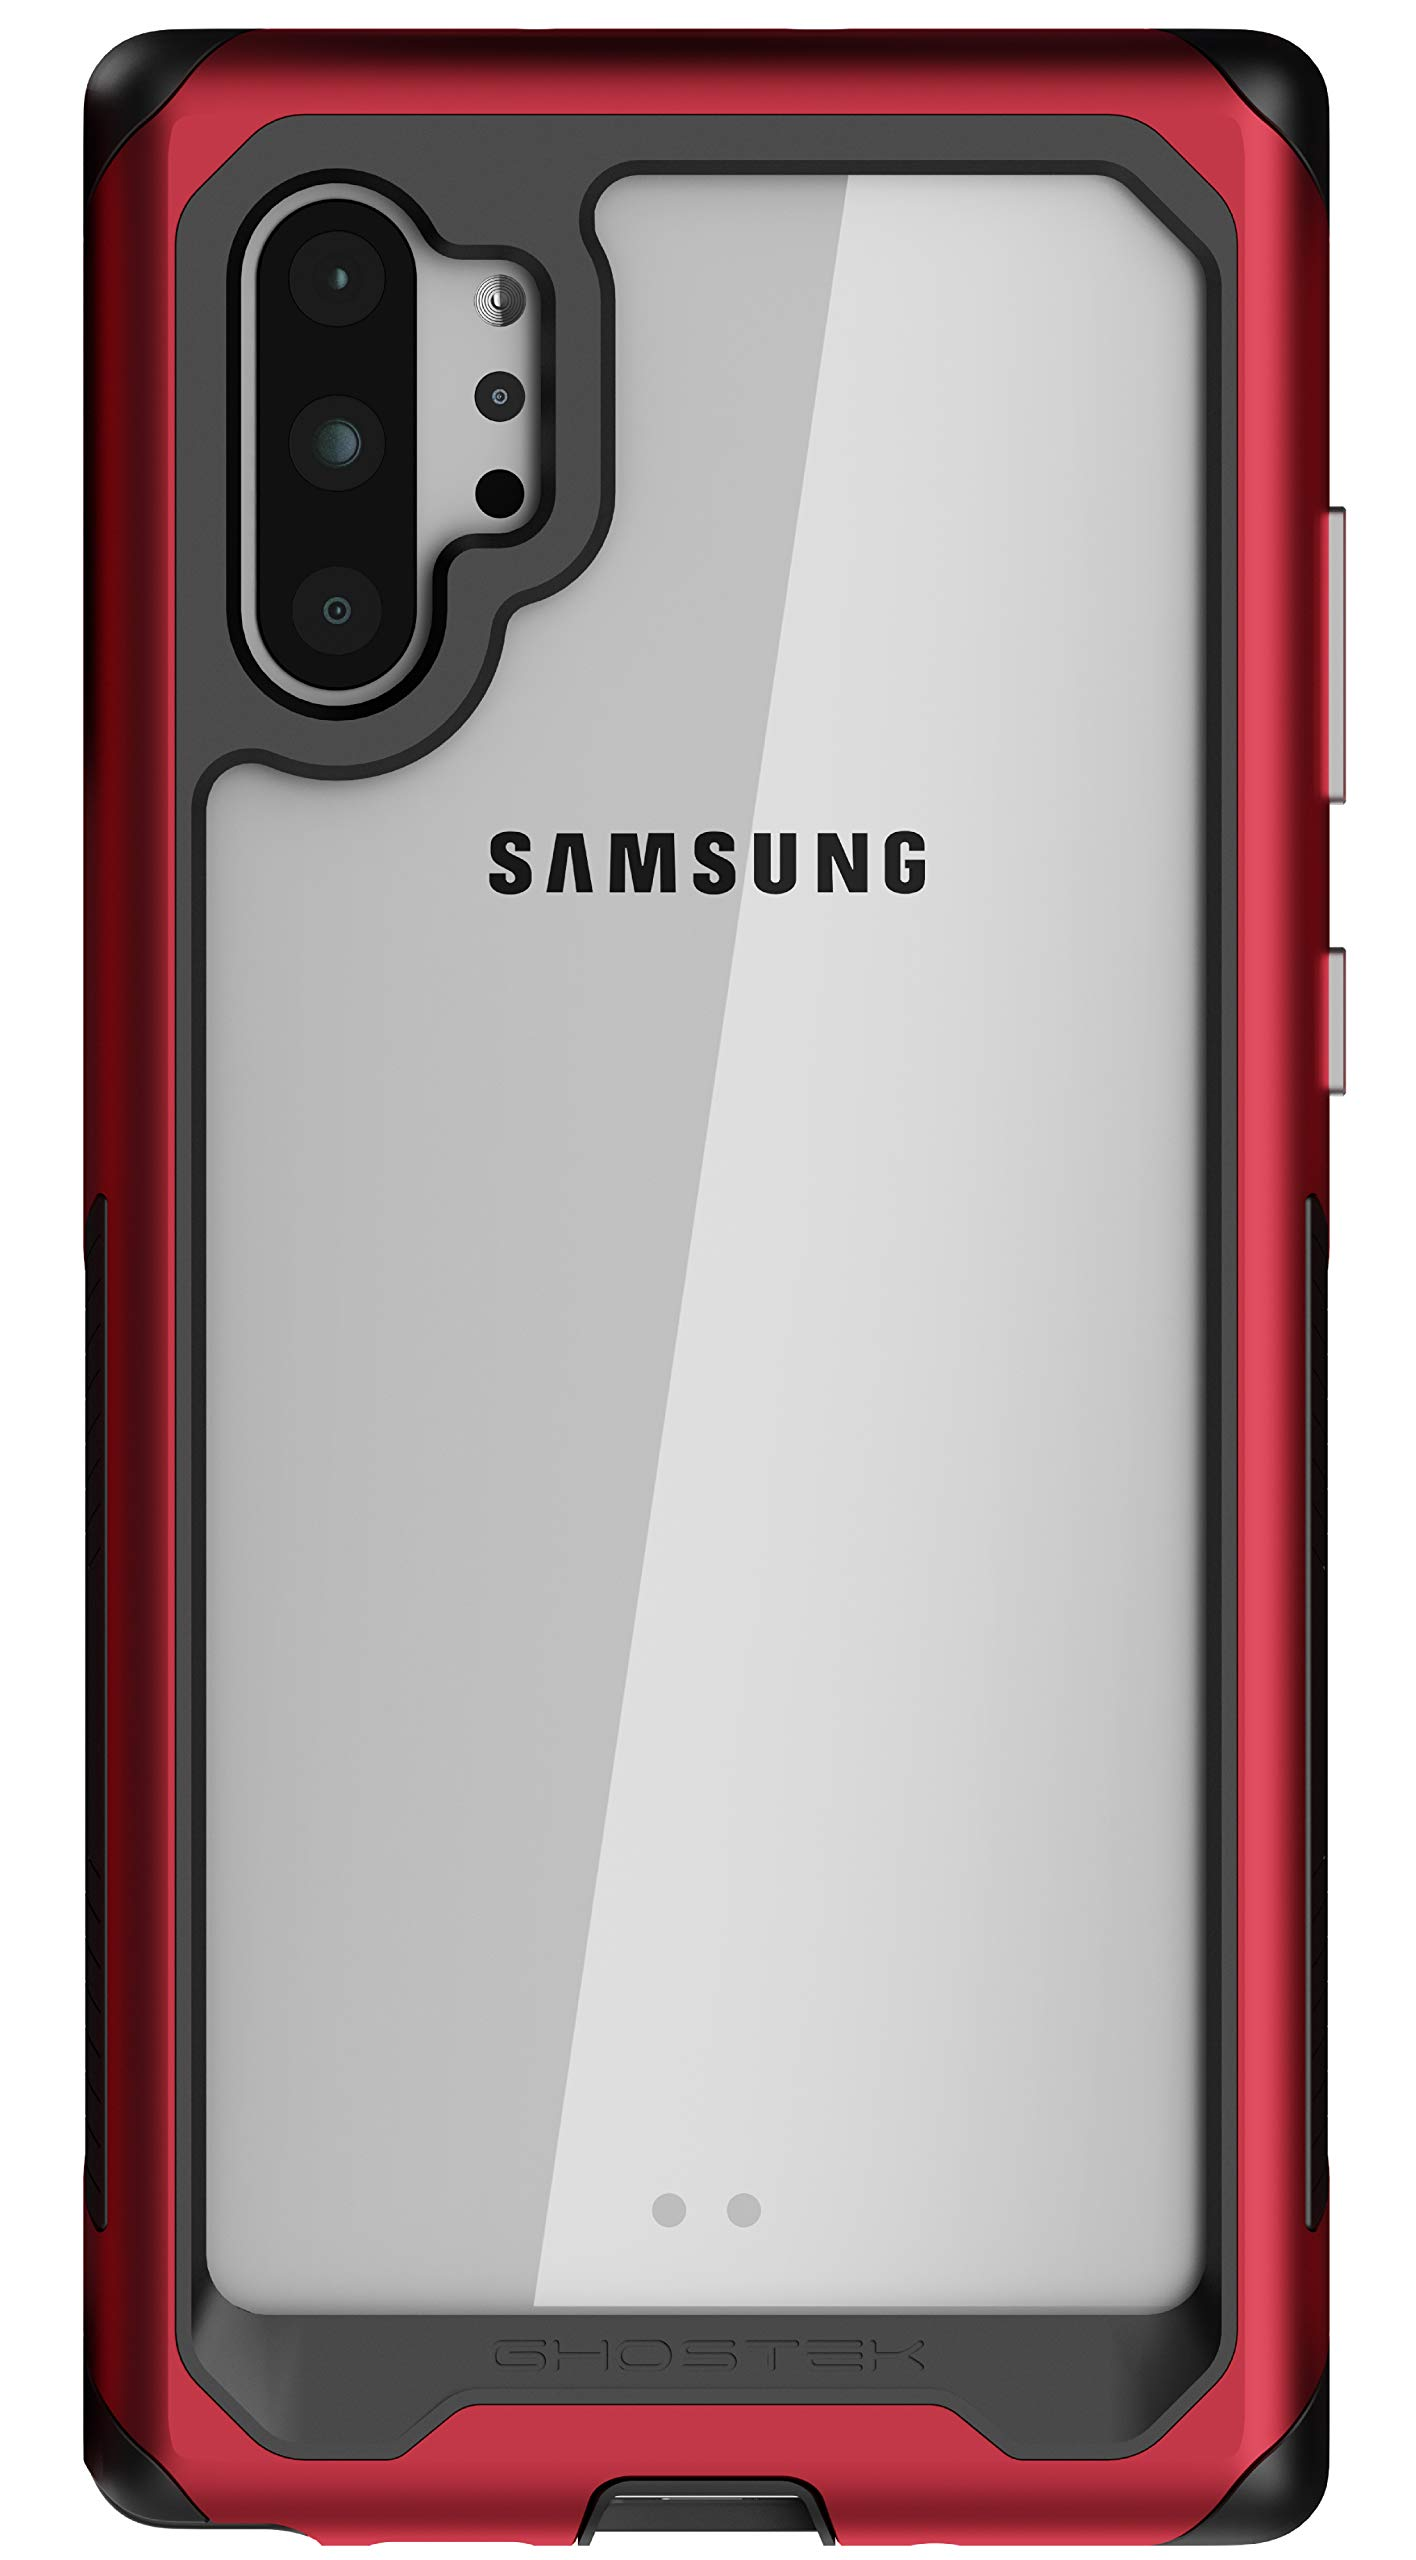 Ghostek Atomic Slim Designed for Galaxy Note 10 Plus Case / Note10+ 5G Clear Metal Bumper with Advanced Reinforced Dual Layer Design & Aluminum Frame for Note 10+ / Note 10 Plus 5G (2019) - (Red) by Ghostek